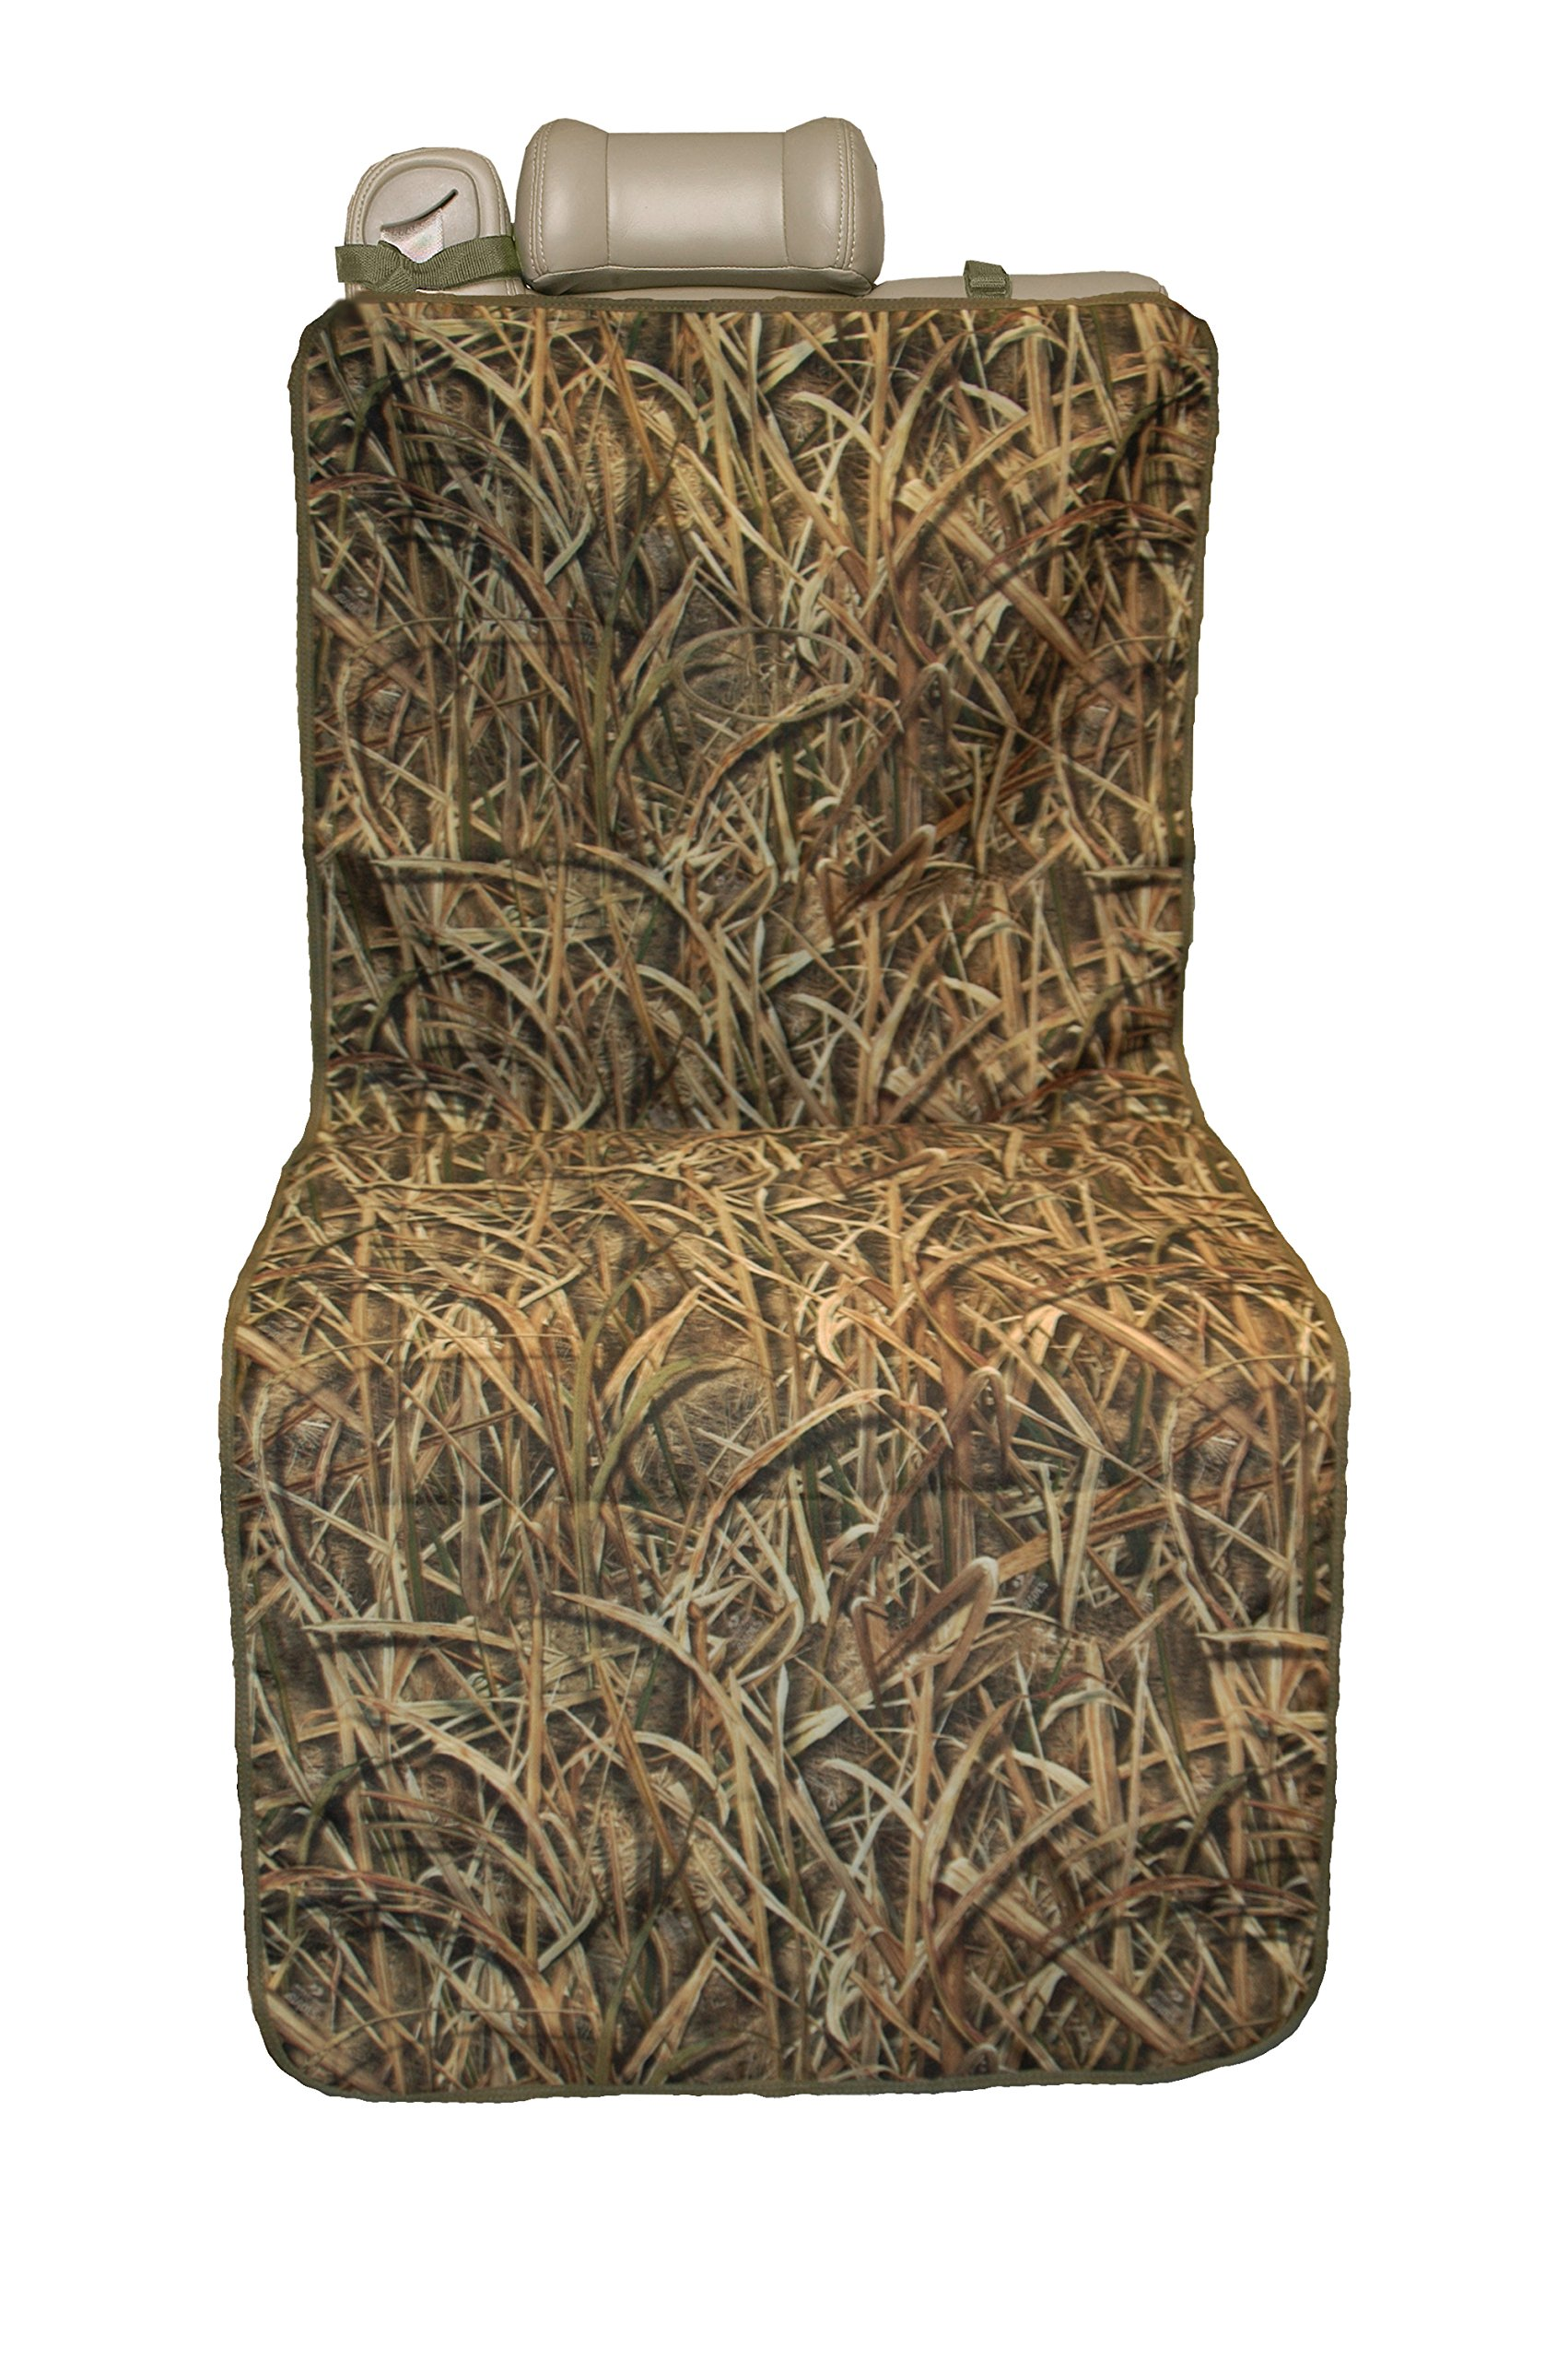 Ducks Unlimited Blades Shotgun Single Seat Cover by Ducks Unlimited (Image #1)